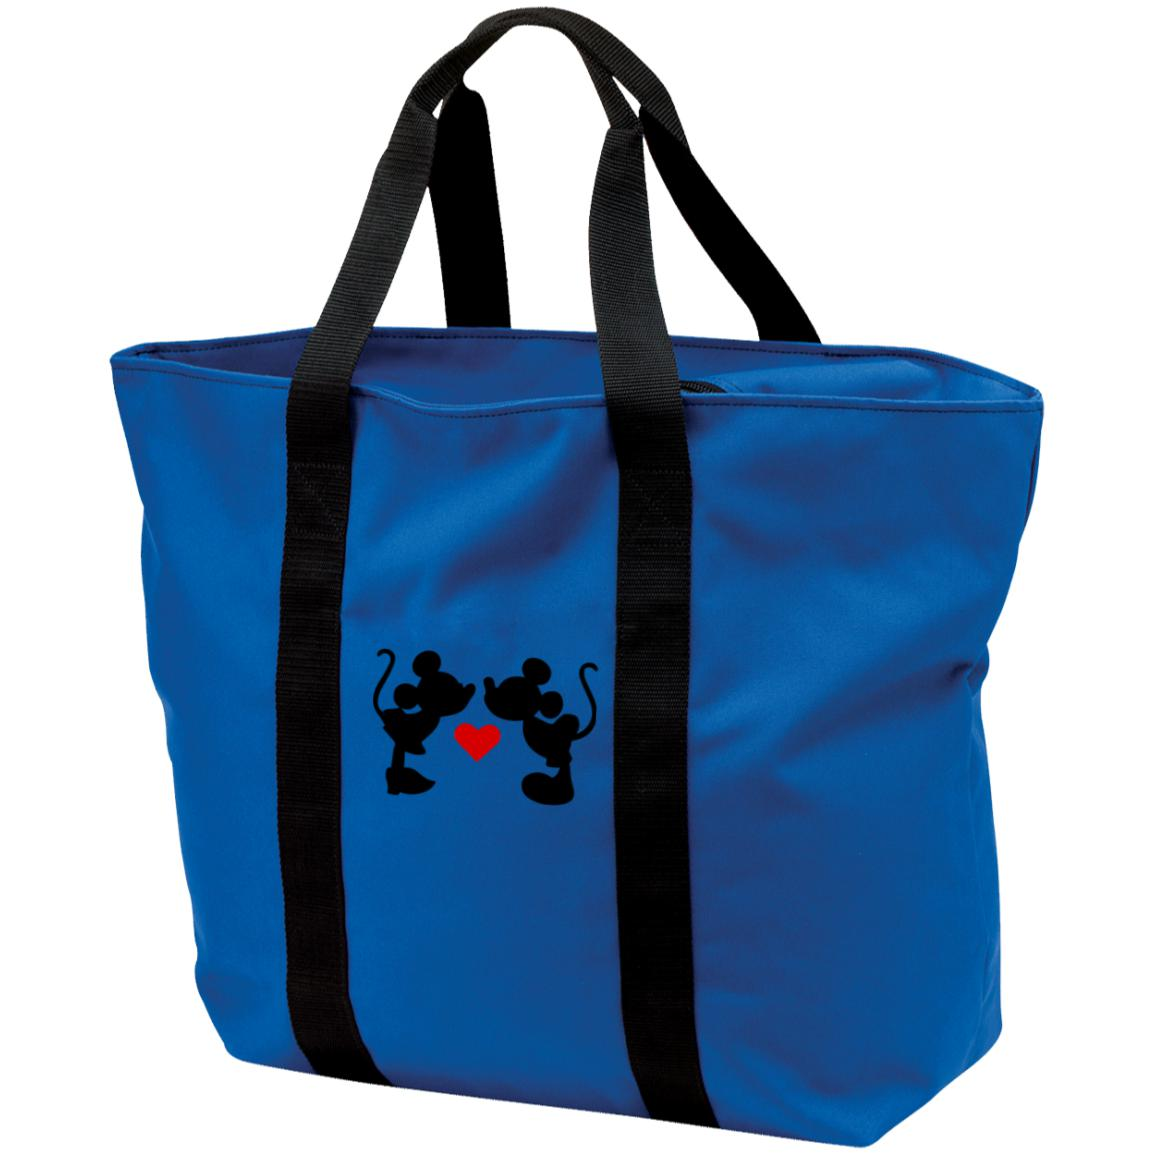 Mickey & Minnie Kissing Tote Bag